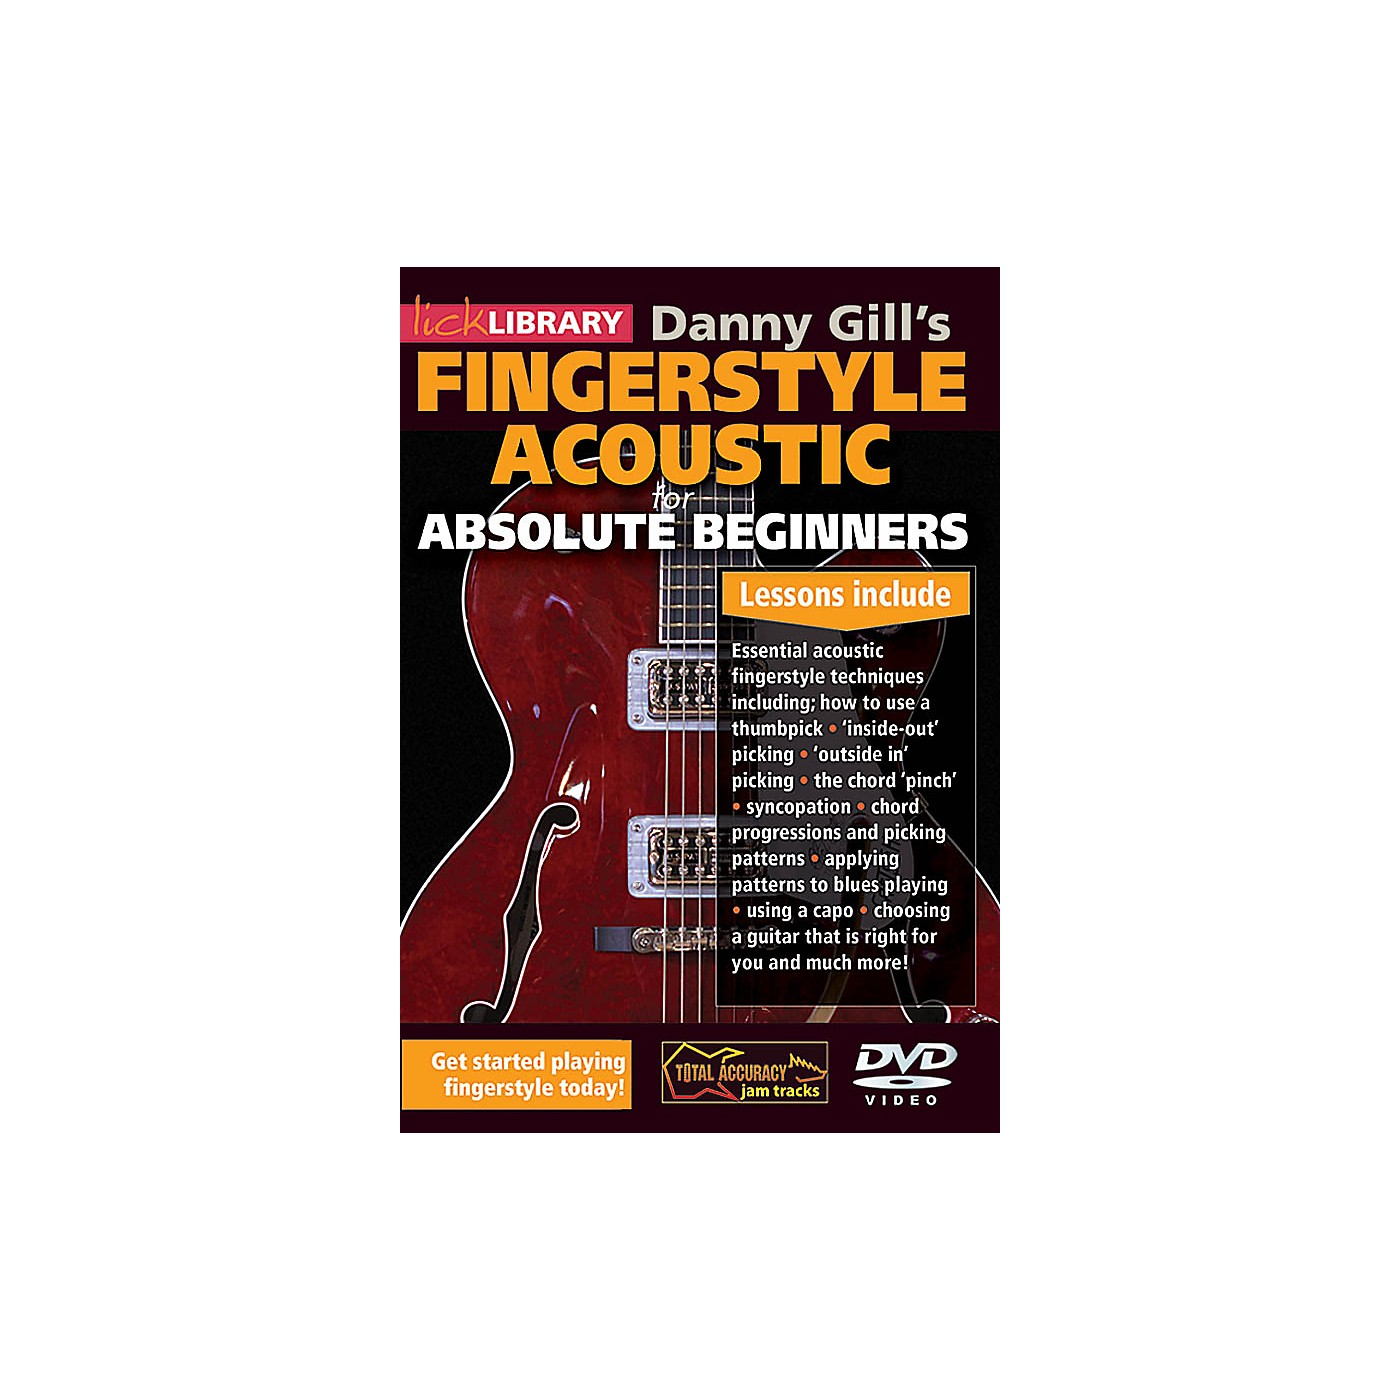 Licklibrary Danny Gill's Fingerstyle Acoustic (Absolute Beginners) Lick Library Series DVD Written by Danny Gill thumbnail